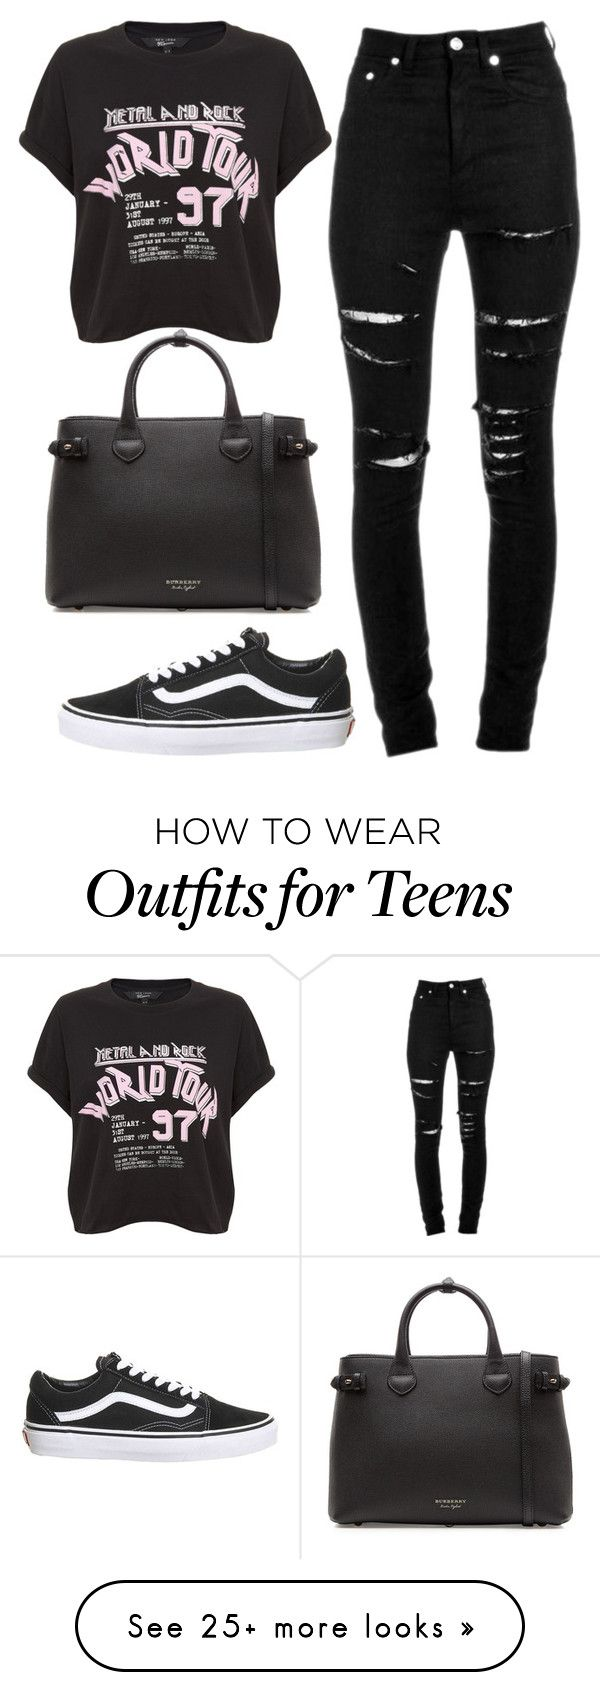 """Untitled #132"" by brodcasthood on Polyvore featuring Yves Saint Laurent, Topshop and Burberry"